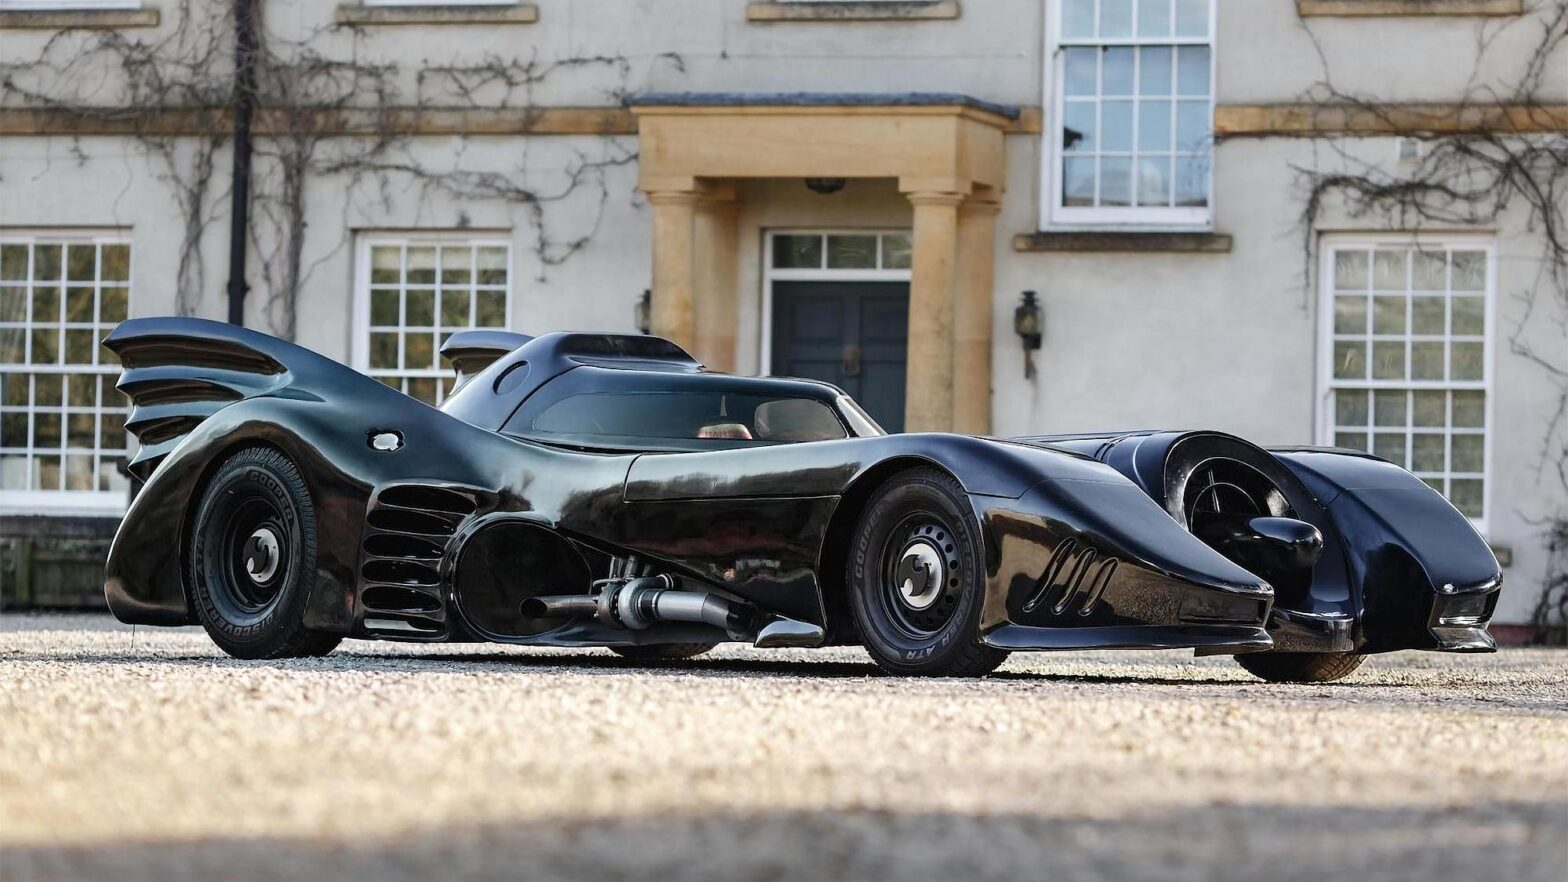 1965 Ford Batmobile Re-creation Bonhams Auction